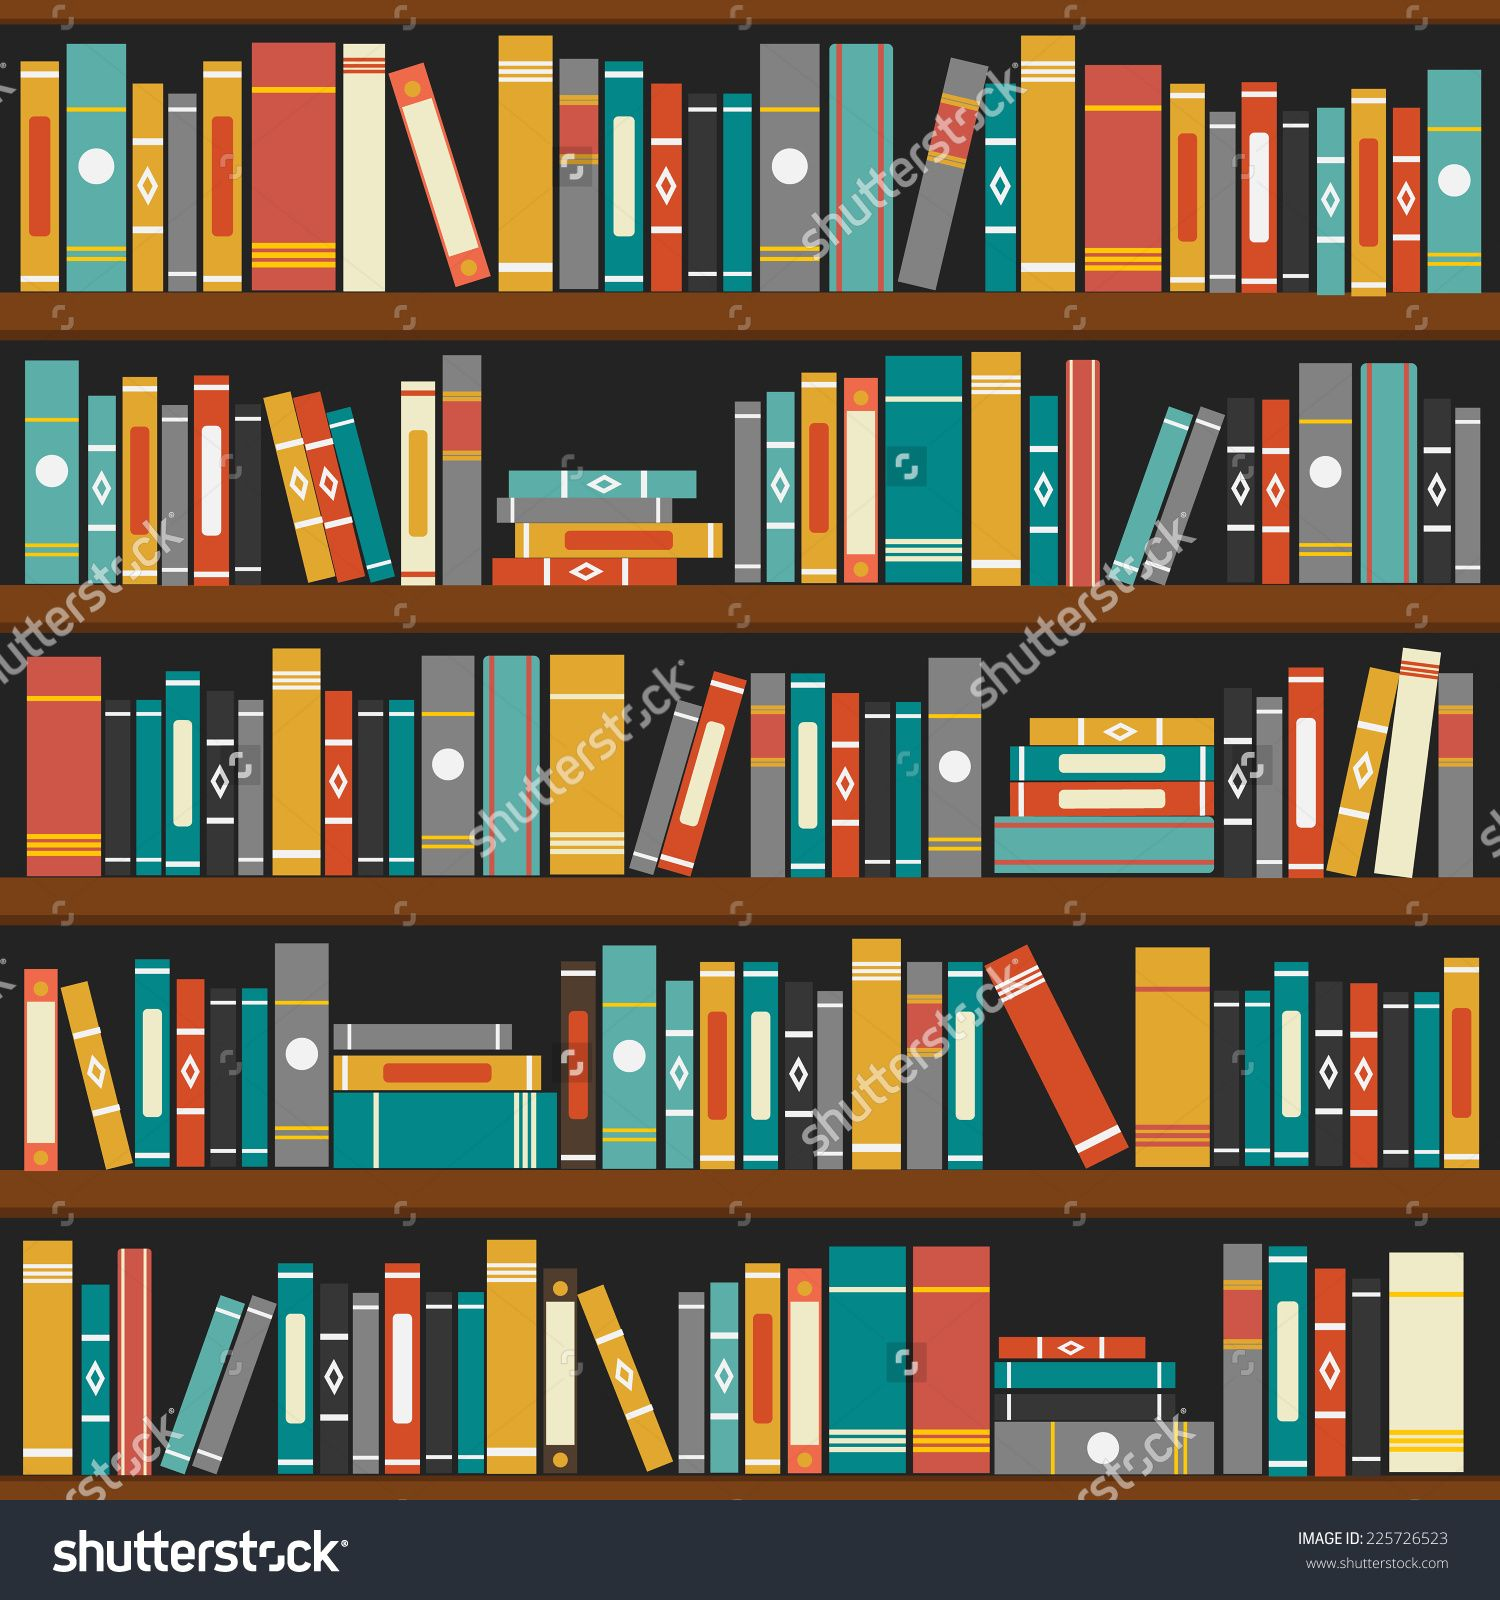 Library Background By Heylaughingboy On Deviantart With Images